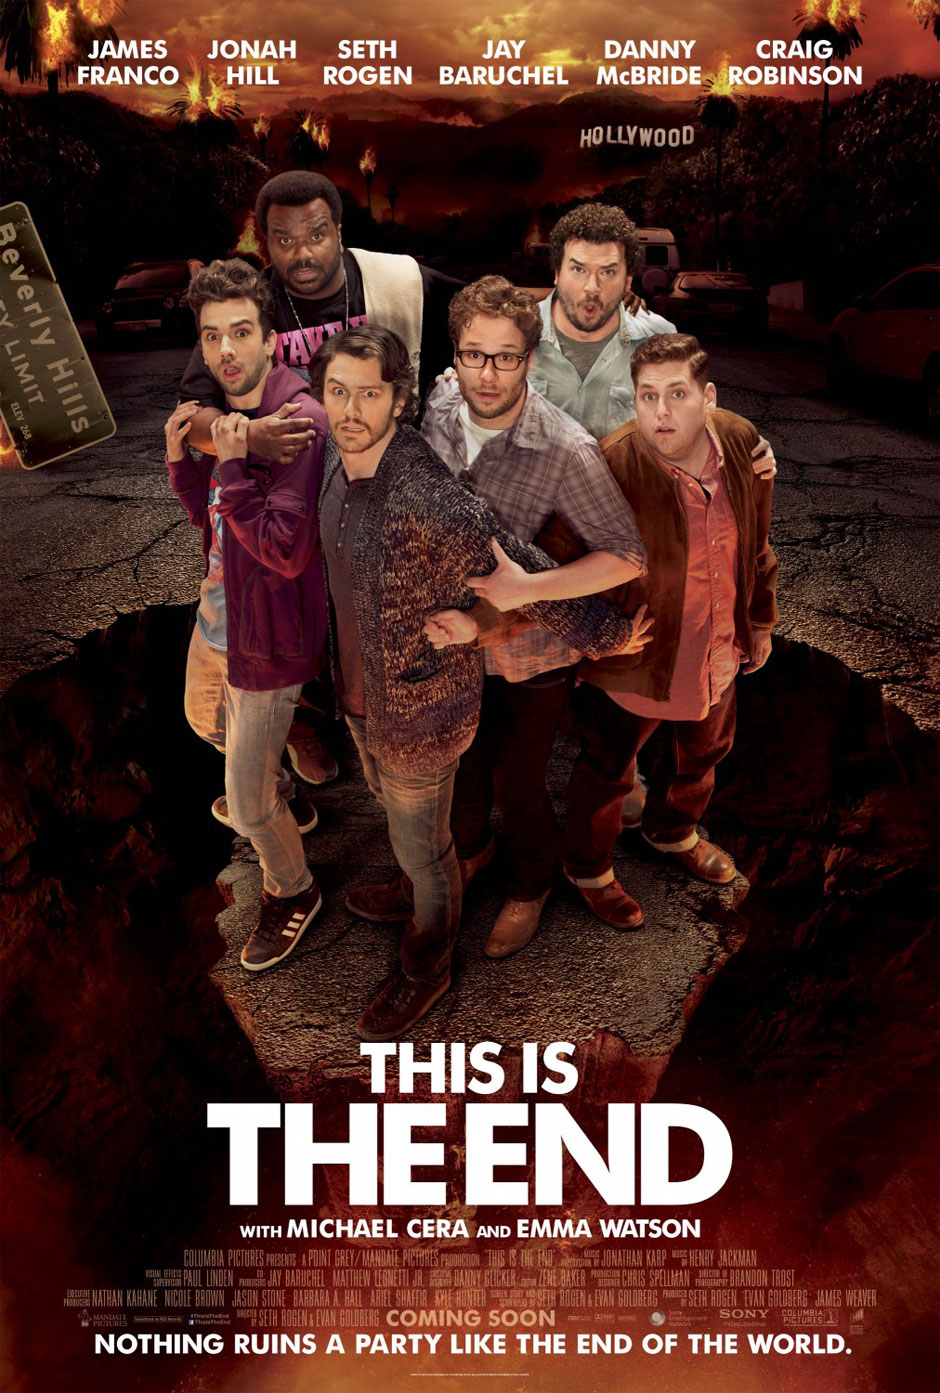 This-is-the-End-2013-Movie-Poster